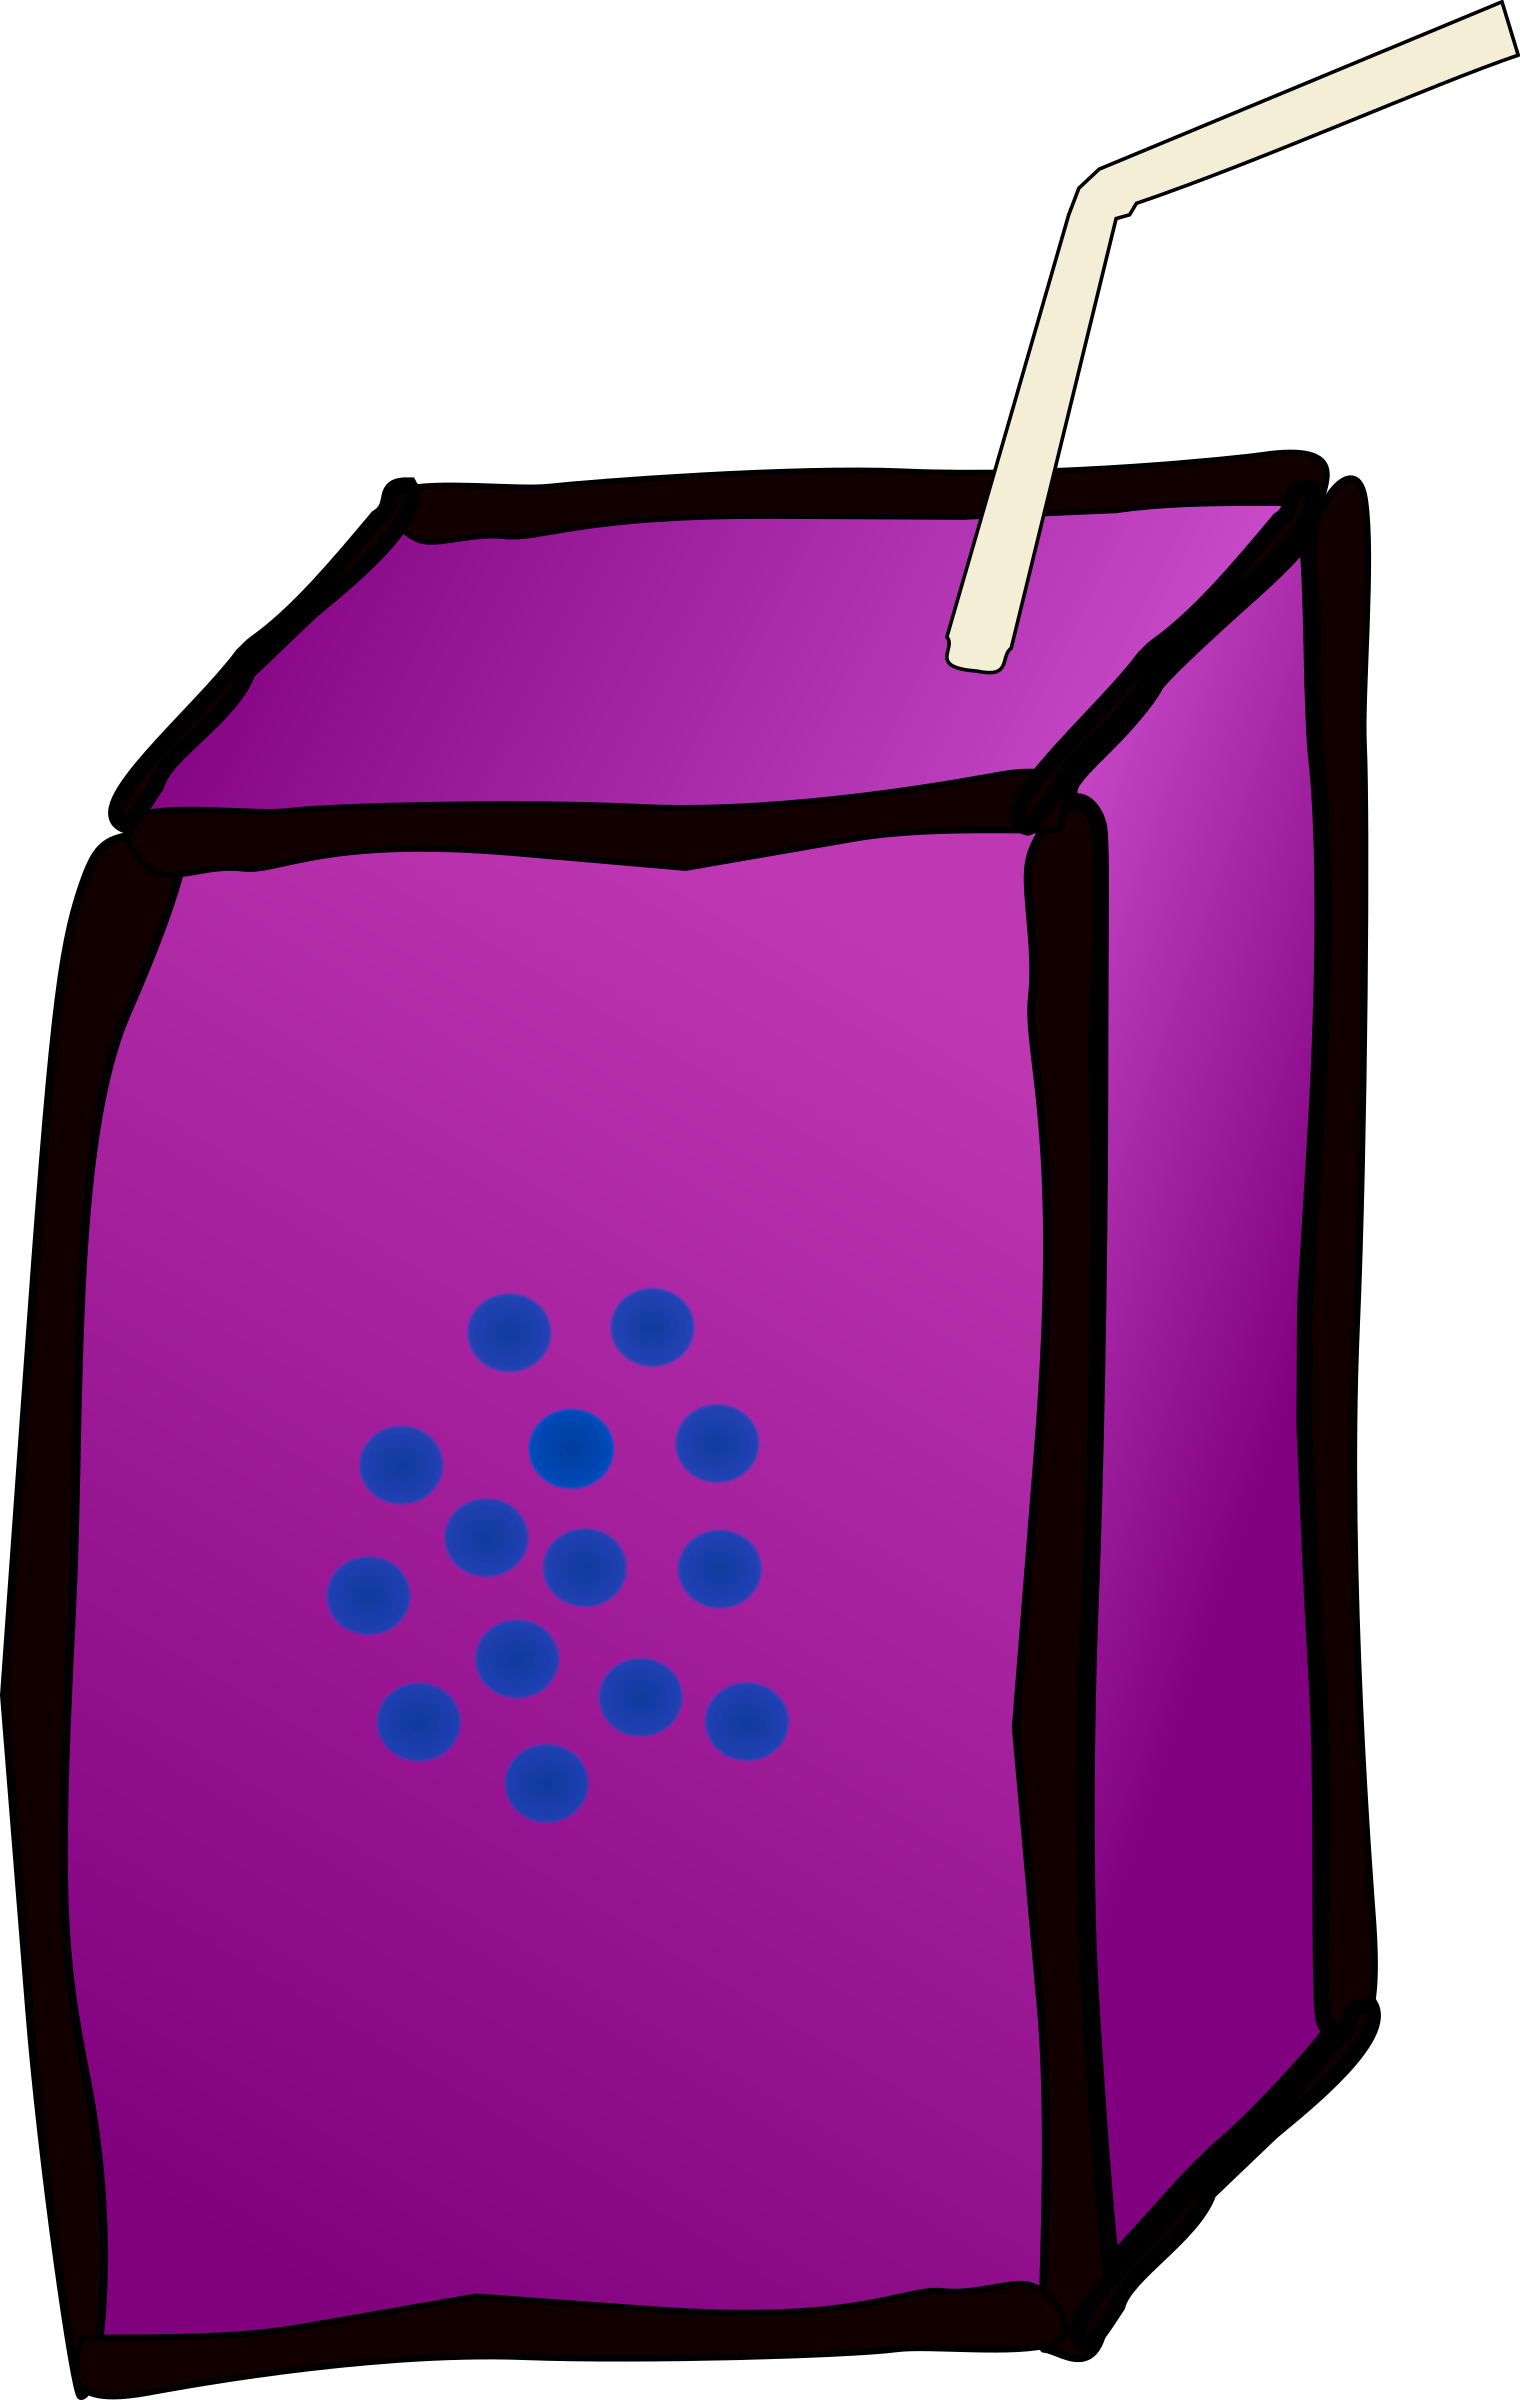 Juice box big image. Grapes clipart animation